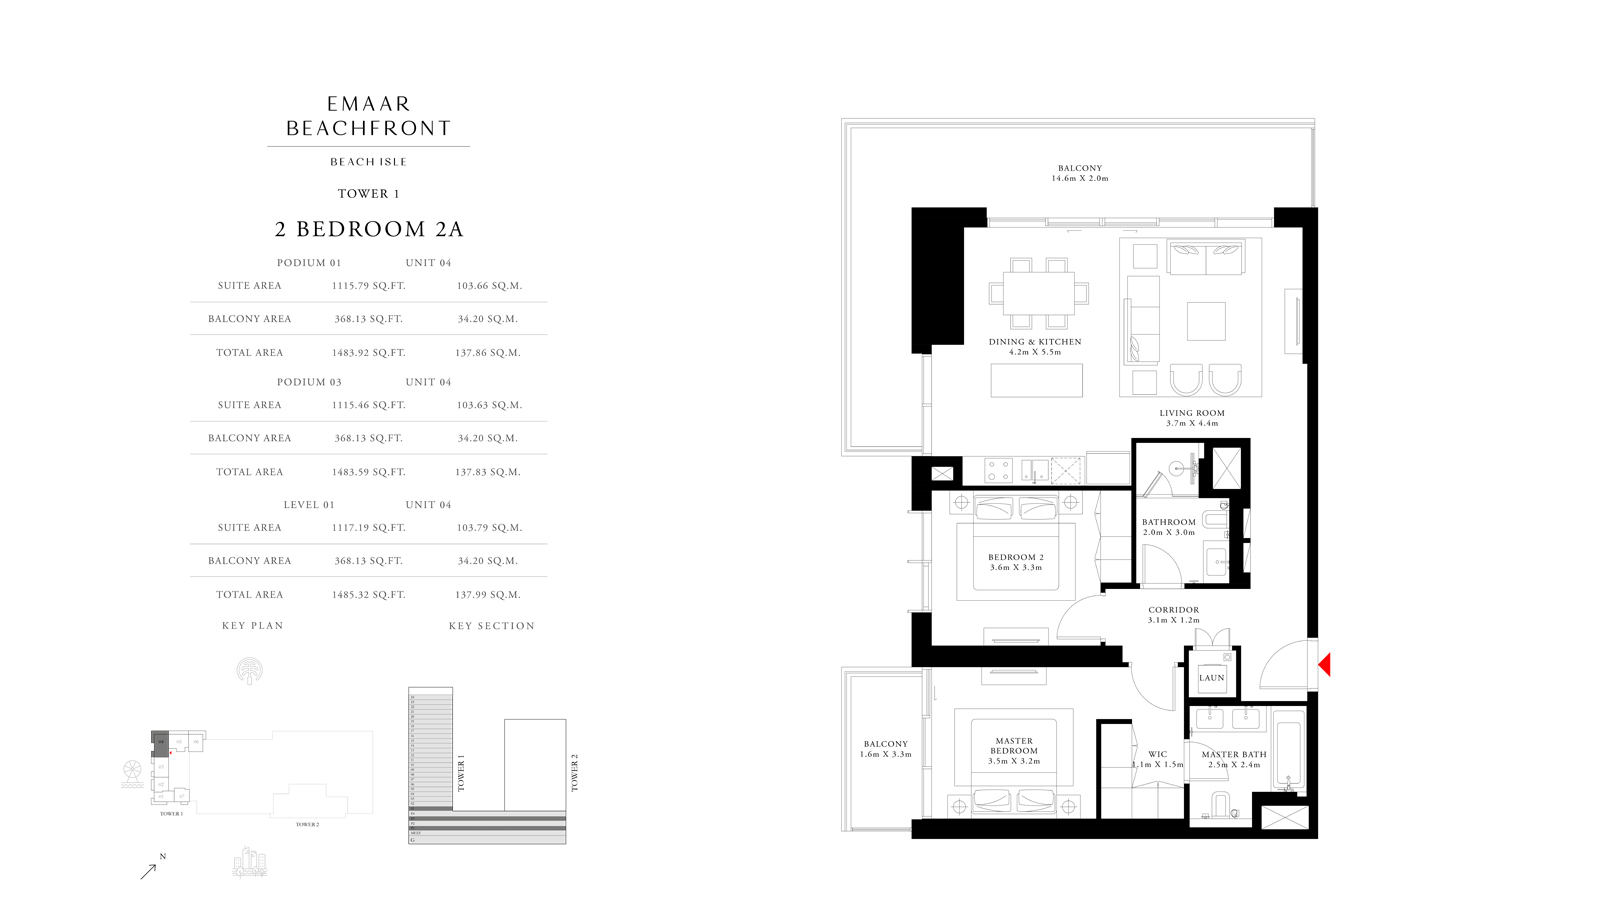 2 Bedroom 2A Tower 1, Size 1485 sq ft